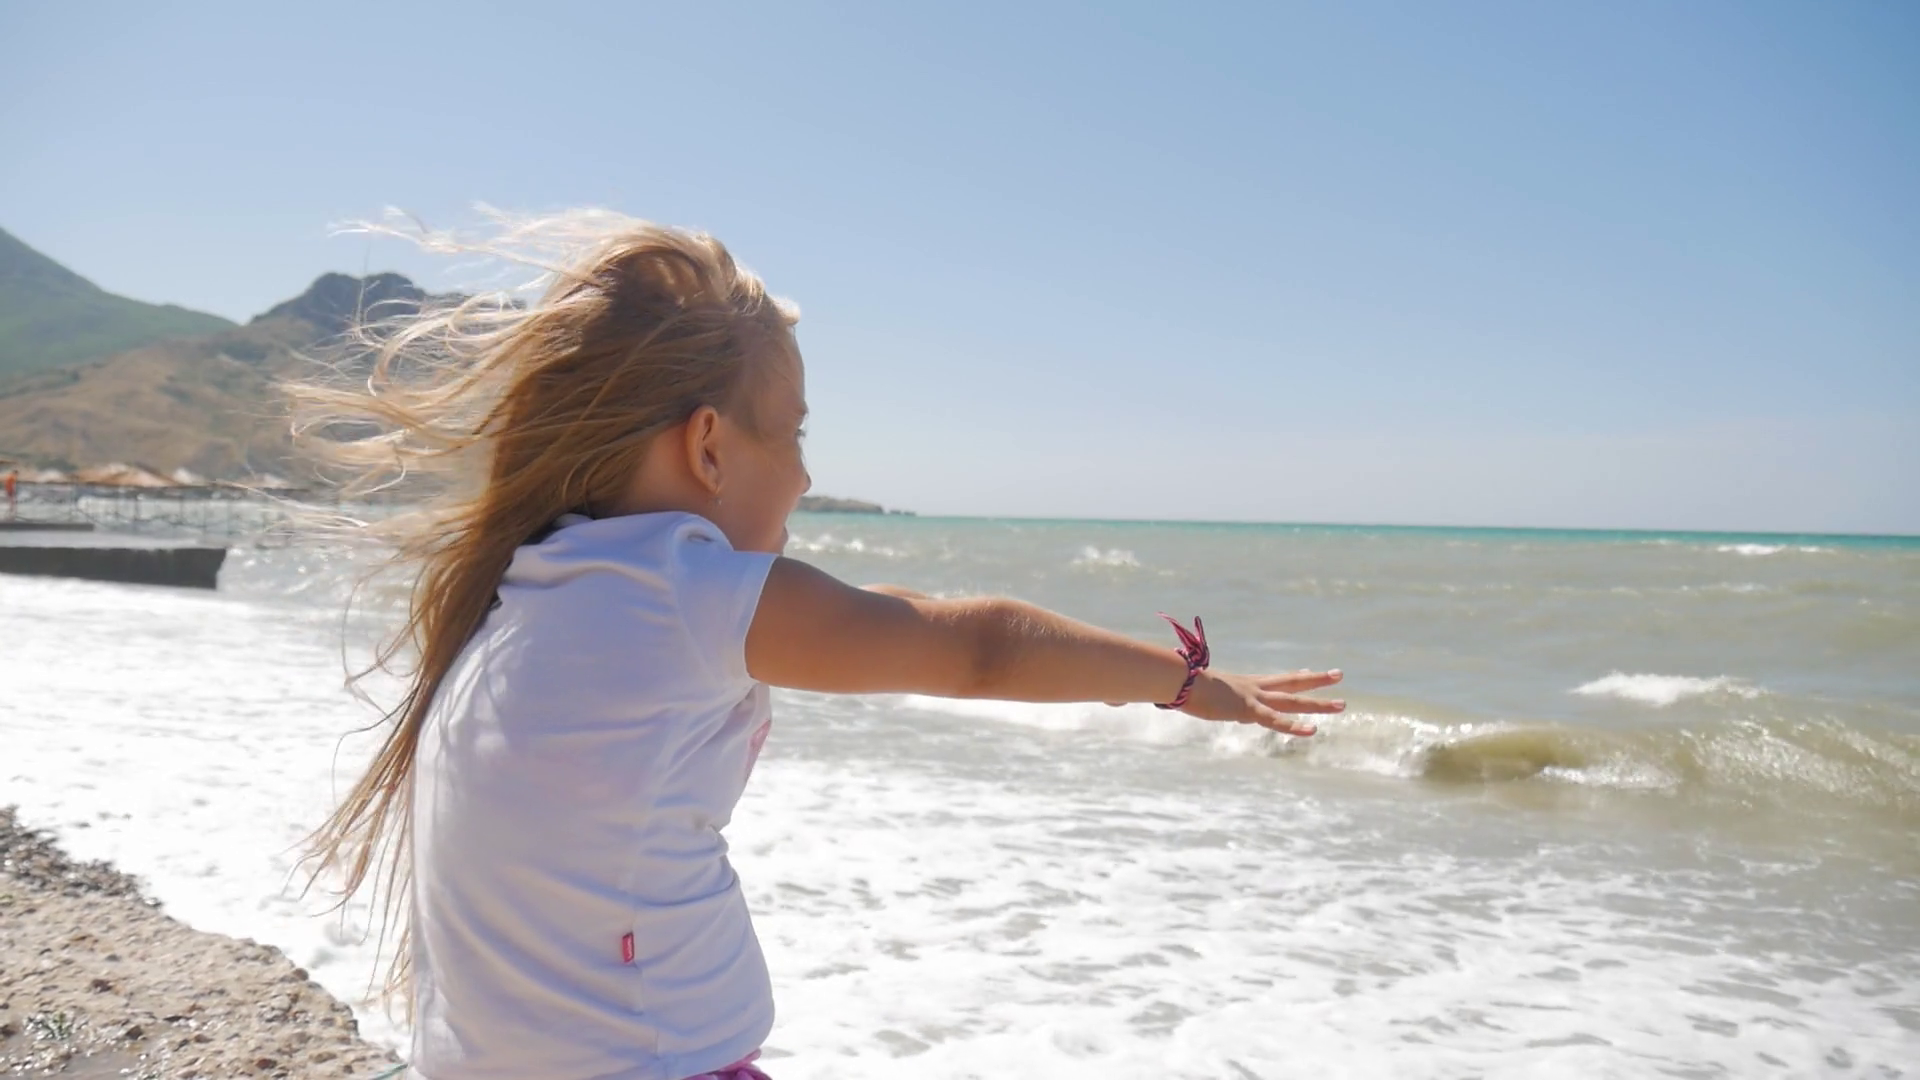 Little girl happily playing with waves at the beach. Stock Video Footage - Storyblocks